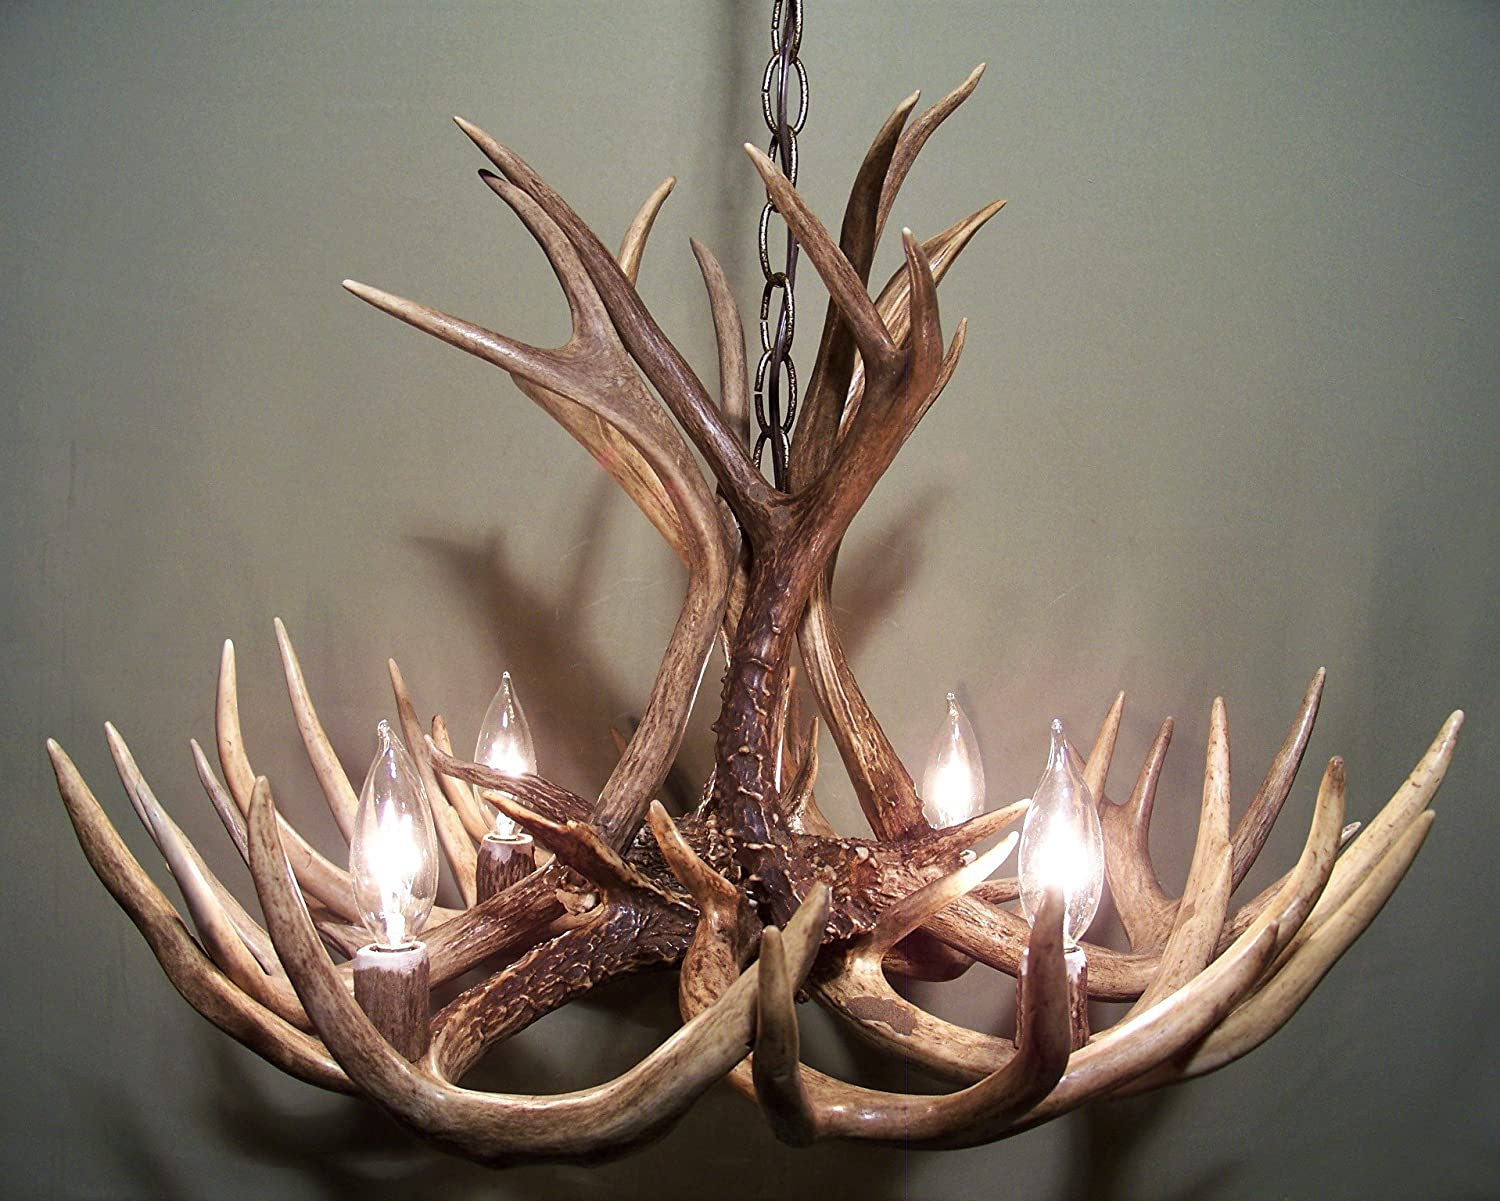 Amazon real antler chandelier whitetail mule deer combo 12 amazon real antler chandelier whitetail mule deer combo 12 antlers 4 lights shed antler art elk covered sockets handmade 23wide x 16 tall arubaitofo Images